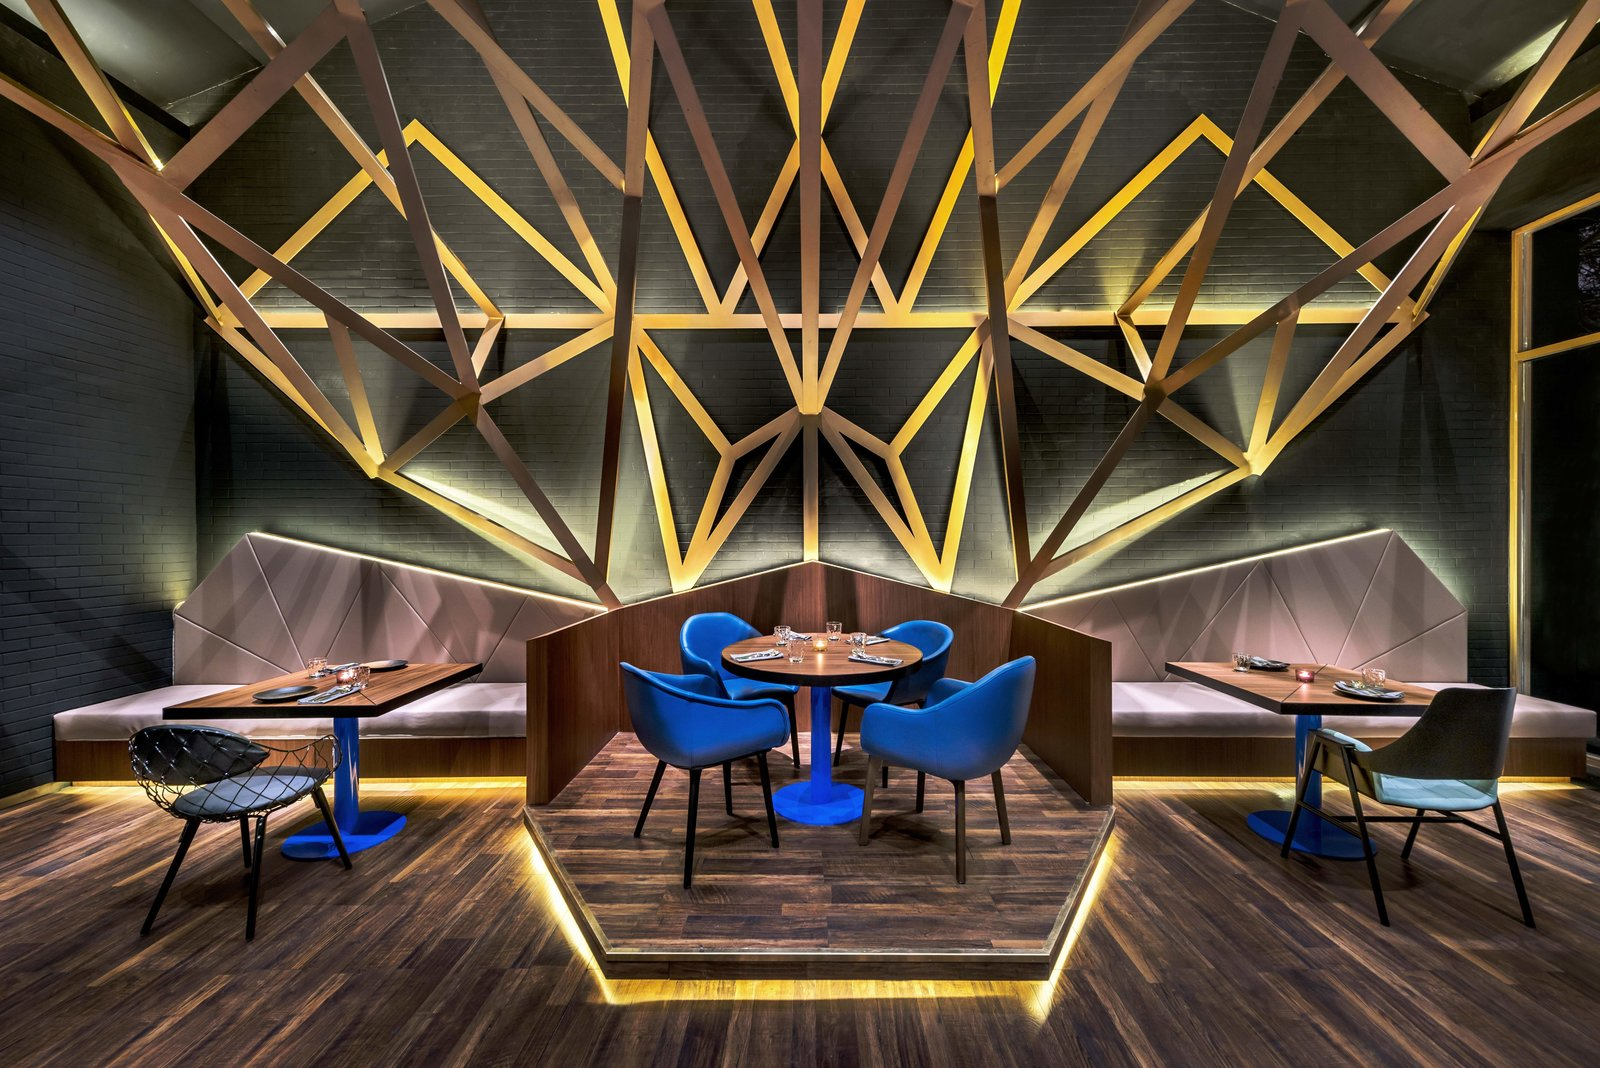 Dining Room, Chair, Wall Lighting, Dark Hardwood Floor, Floor Lighting, and Table  Vue Hotel Hou Hai from A Hotel in Beijing Fuses Chinese History With Cosmopolitan Style